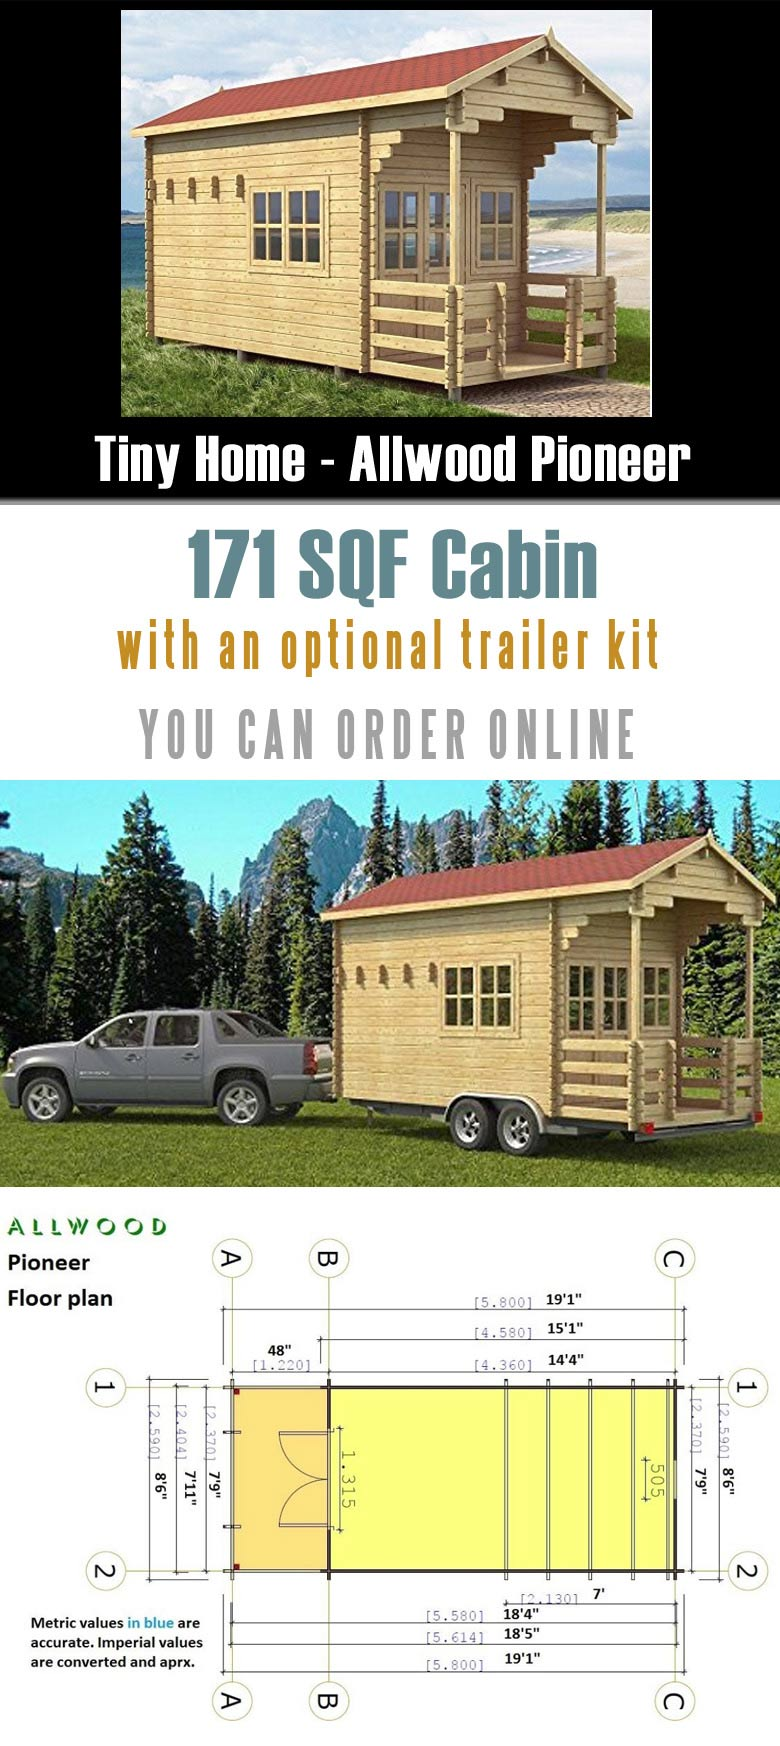 This is one of prefab tiny trailer houses that you can order from Amazon.